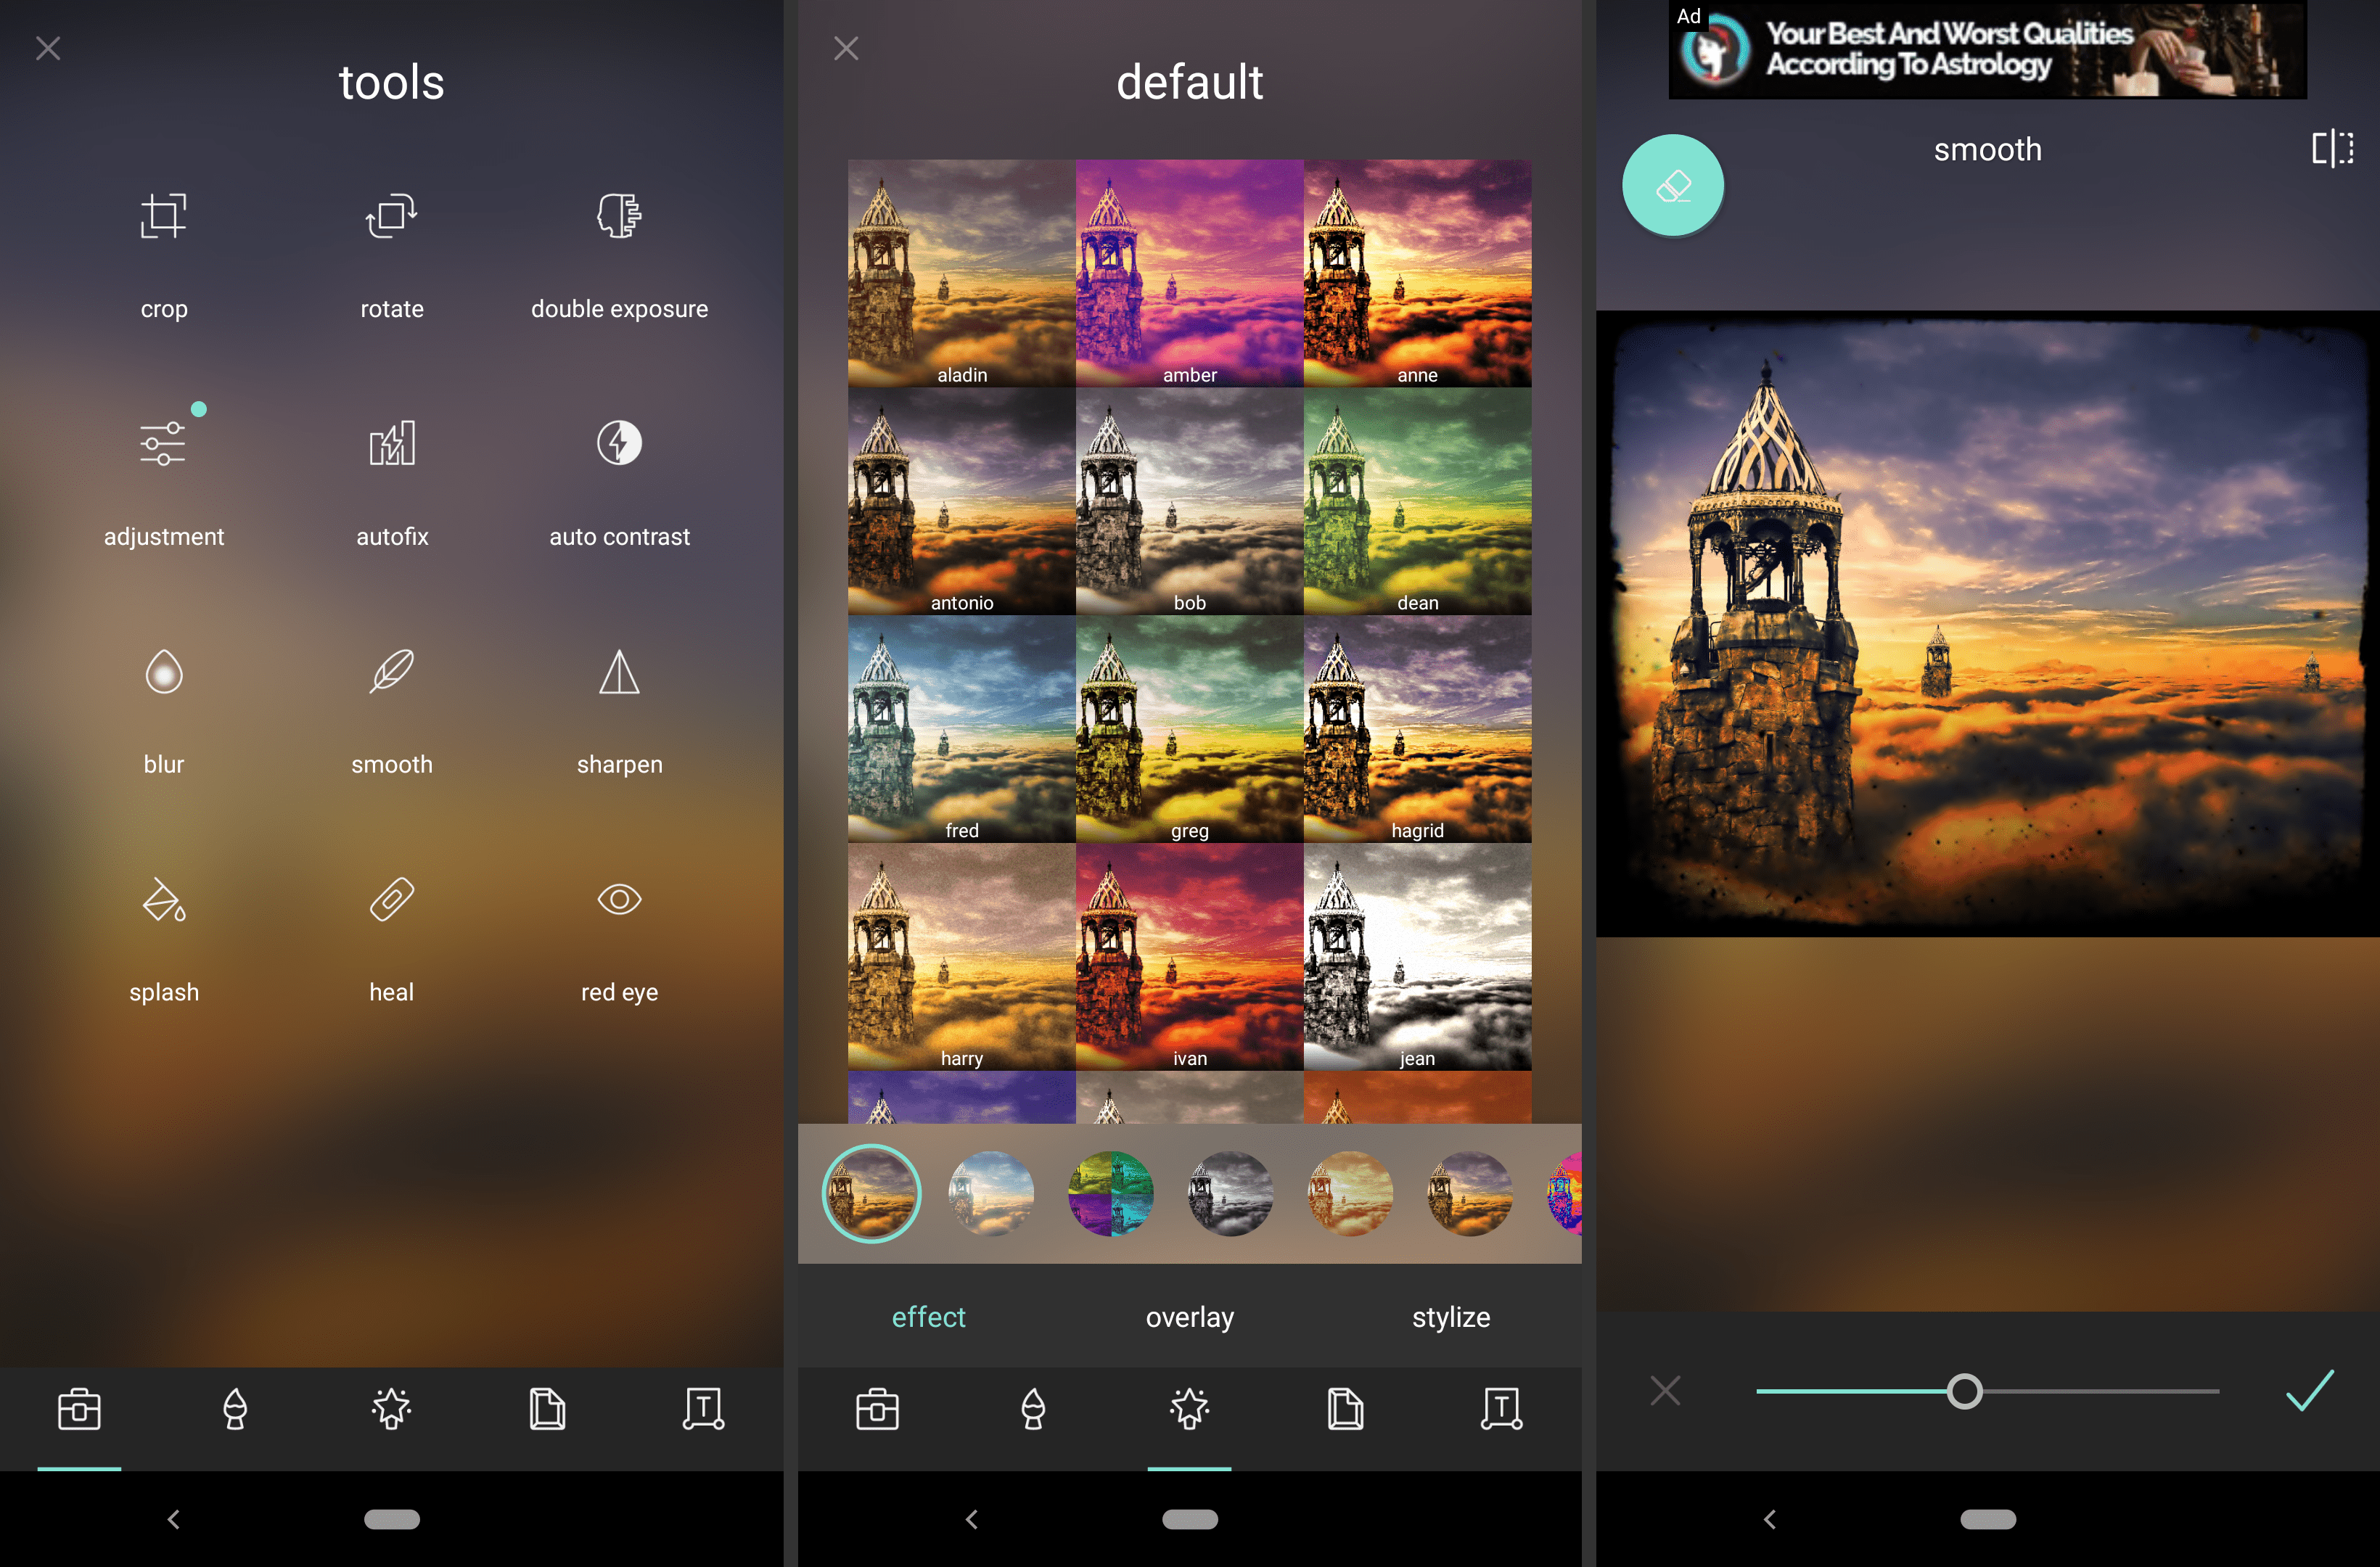 Screenshots of the Pixlr Android image editor app